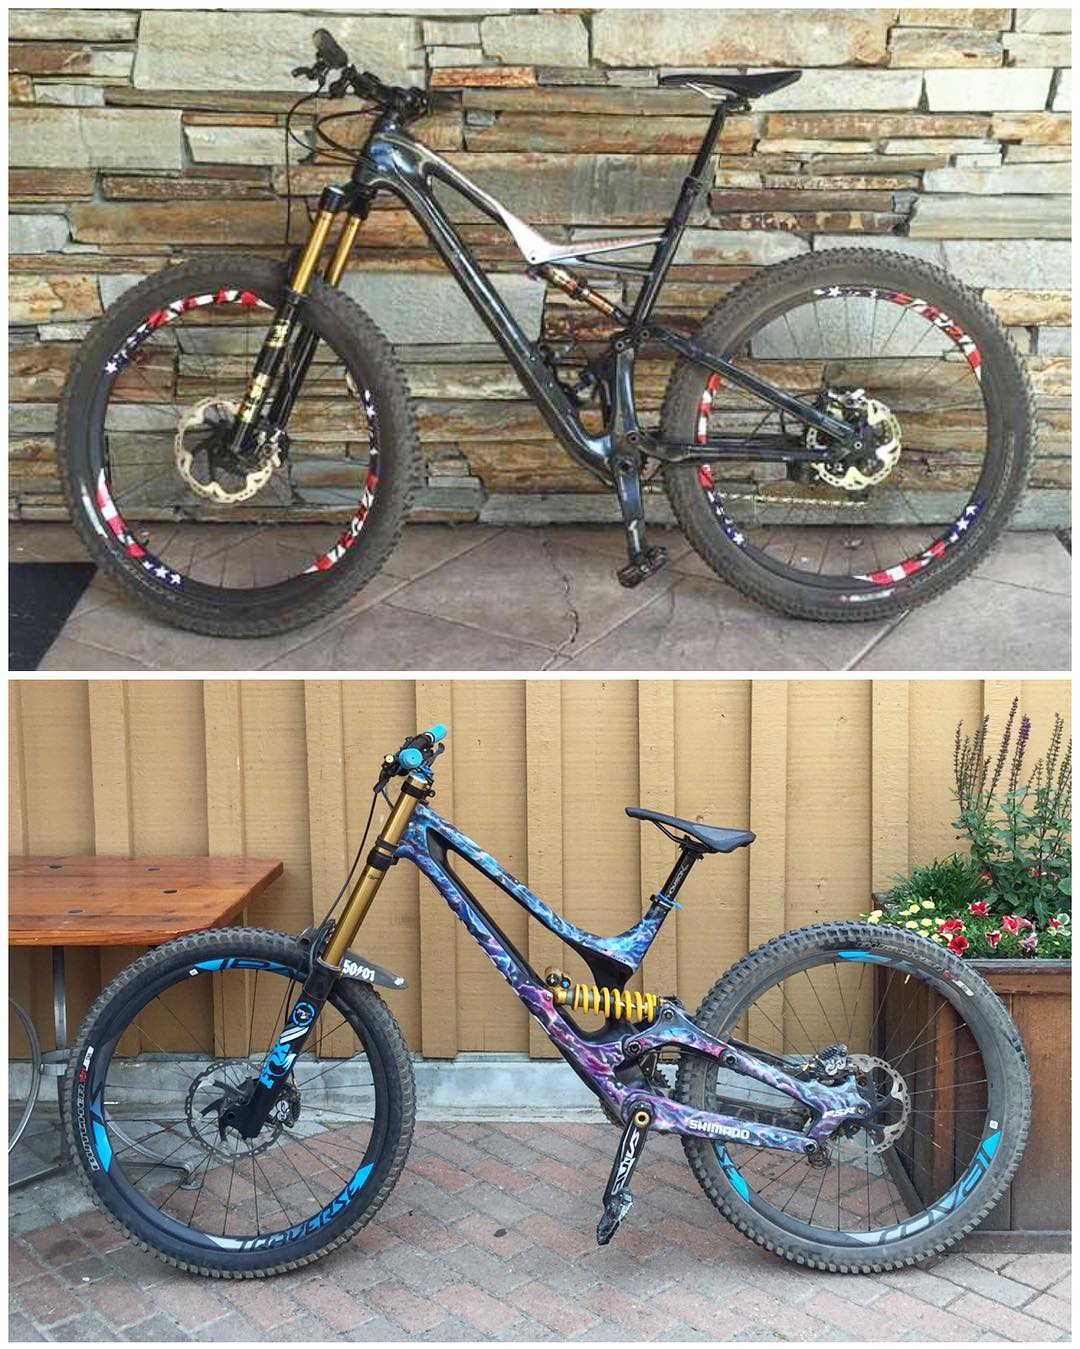 My two mountain biking assault weapons: Specialized StumpJumper and Demo8 bikes. The StumpJumper pedals incredibly well, and handles some downhill stuff - great for traversing mountain trails here in Park City. The Demo8 just HAULS ass on rough...